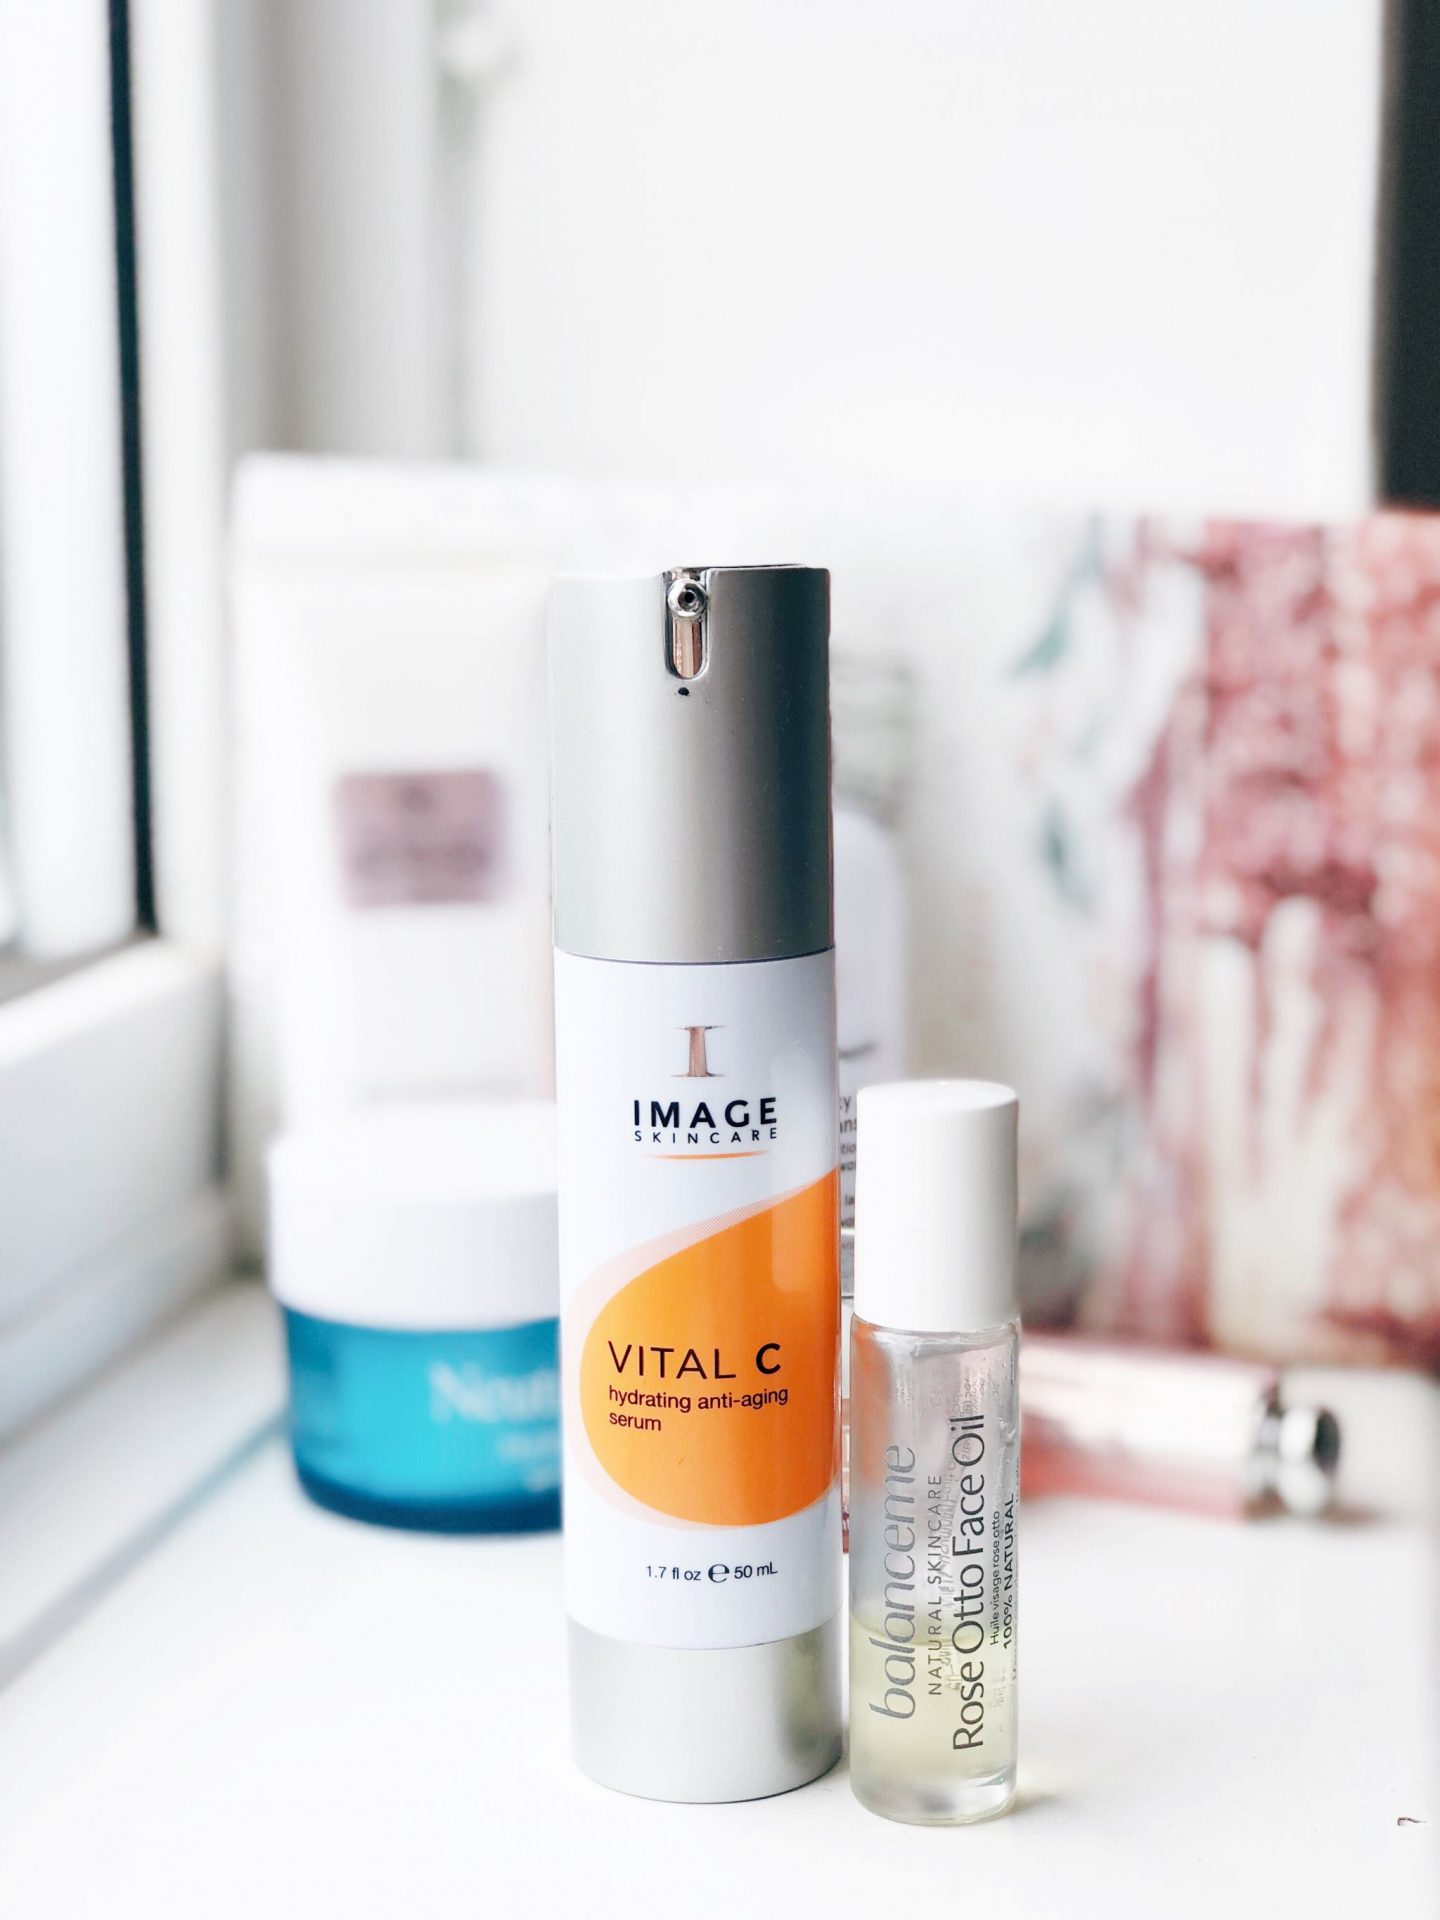 image skincare serum rose otto facial oil